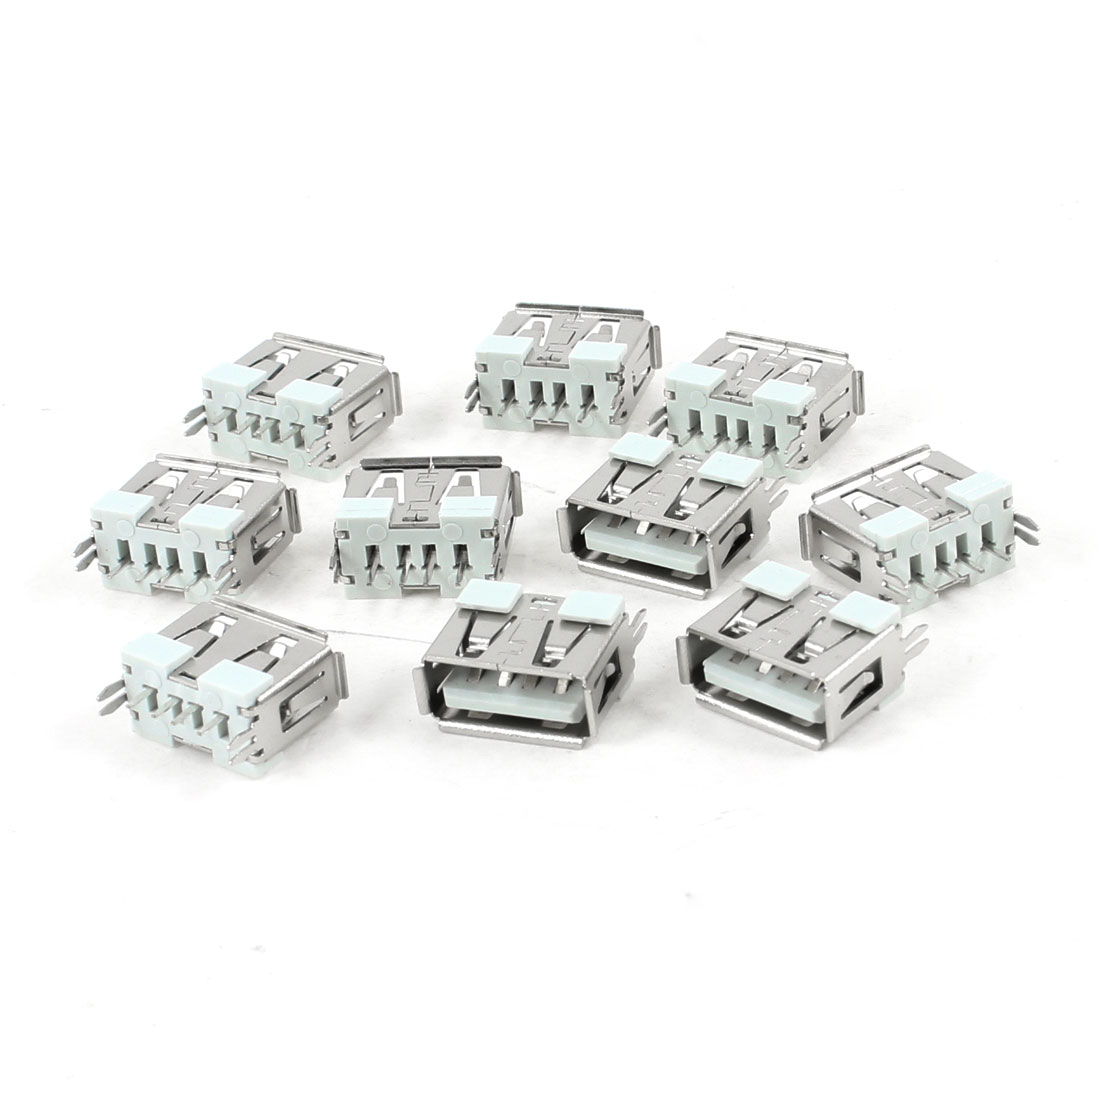 10 Pcs Single USB 2.0 A 180 Degree 4-Pin DIP Female Jack Connector